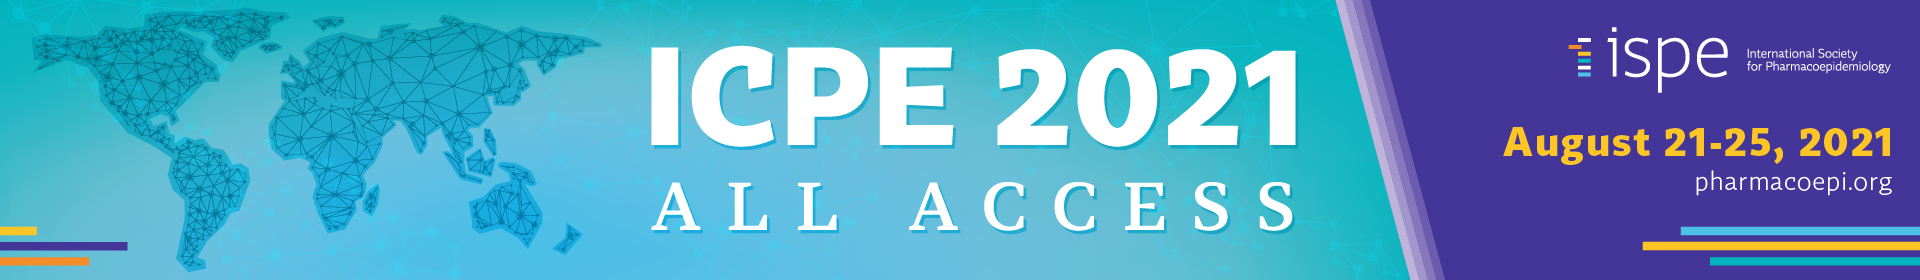 ICPE 2021 Event Banner